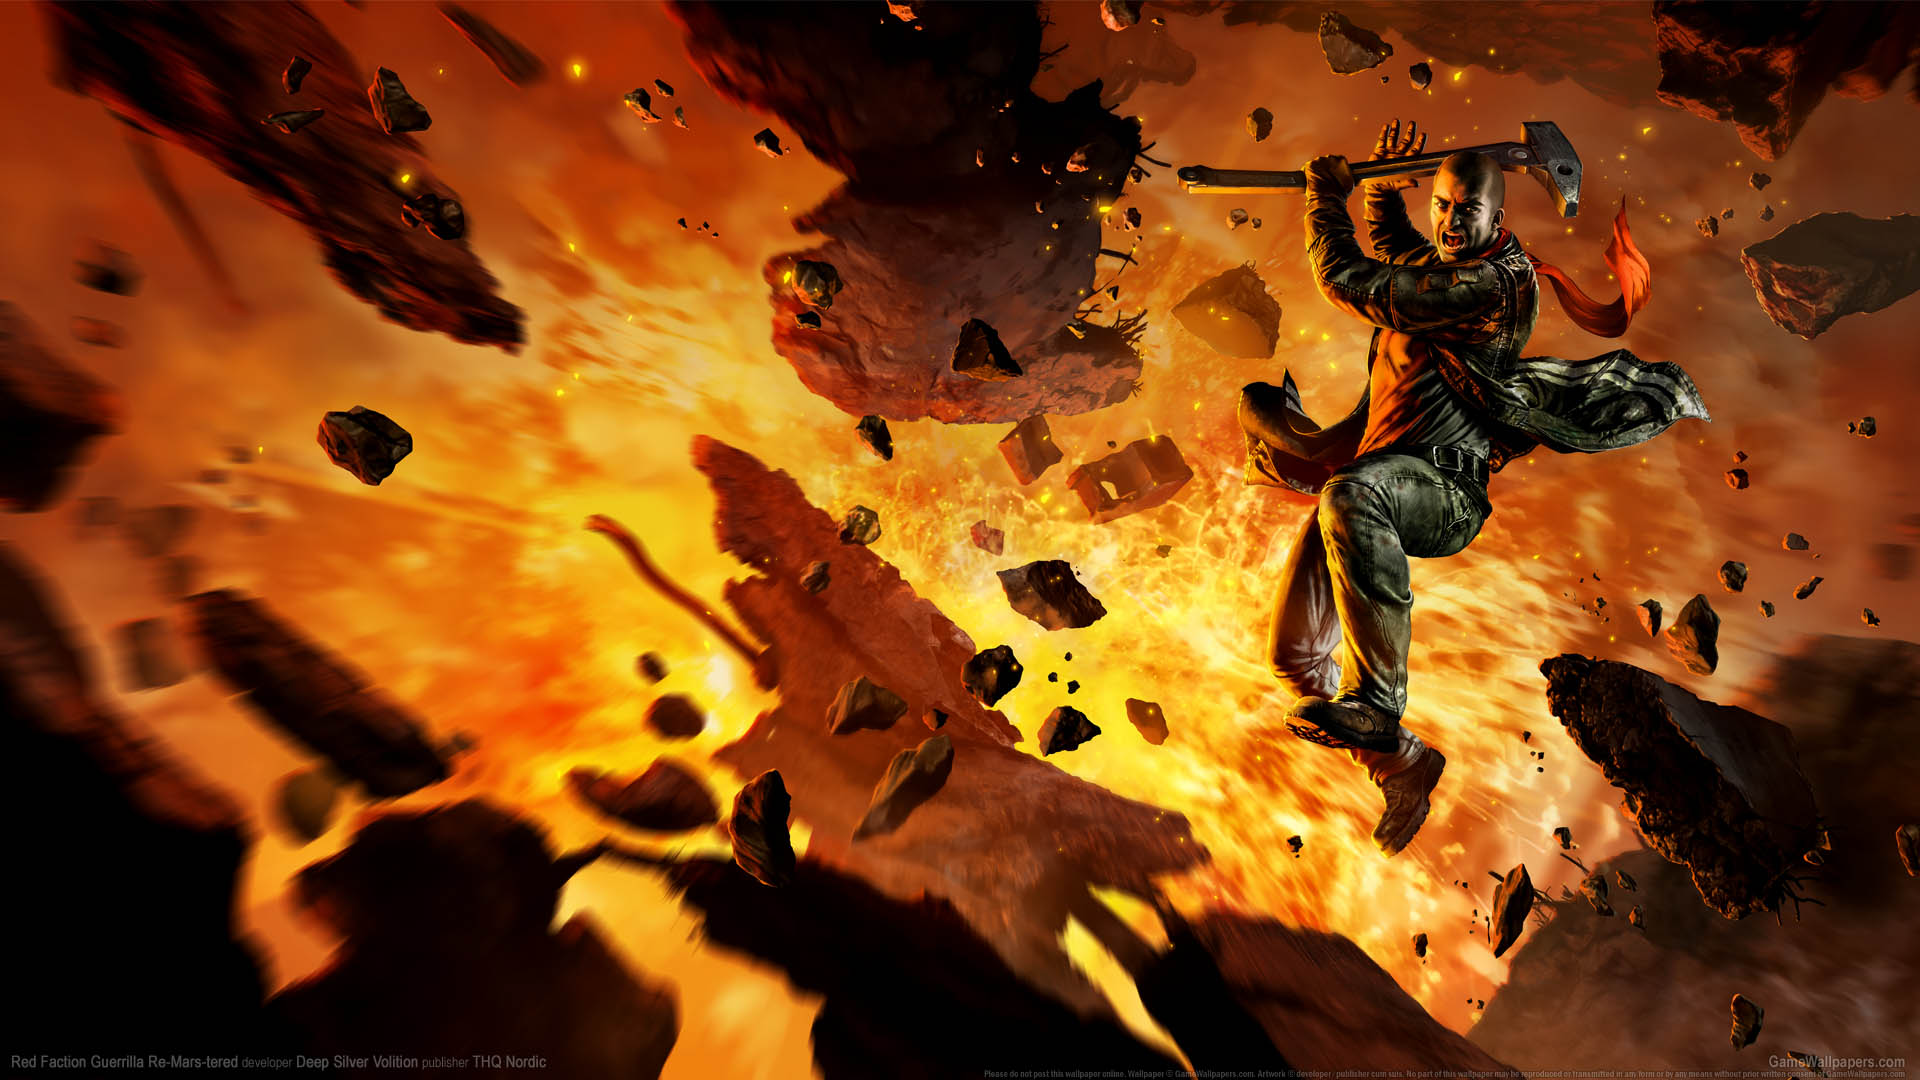 Red Faction: Guerrilla Re-Mars-tered fond d'écran 01 1920x1080